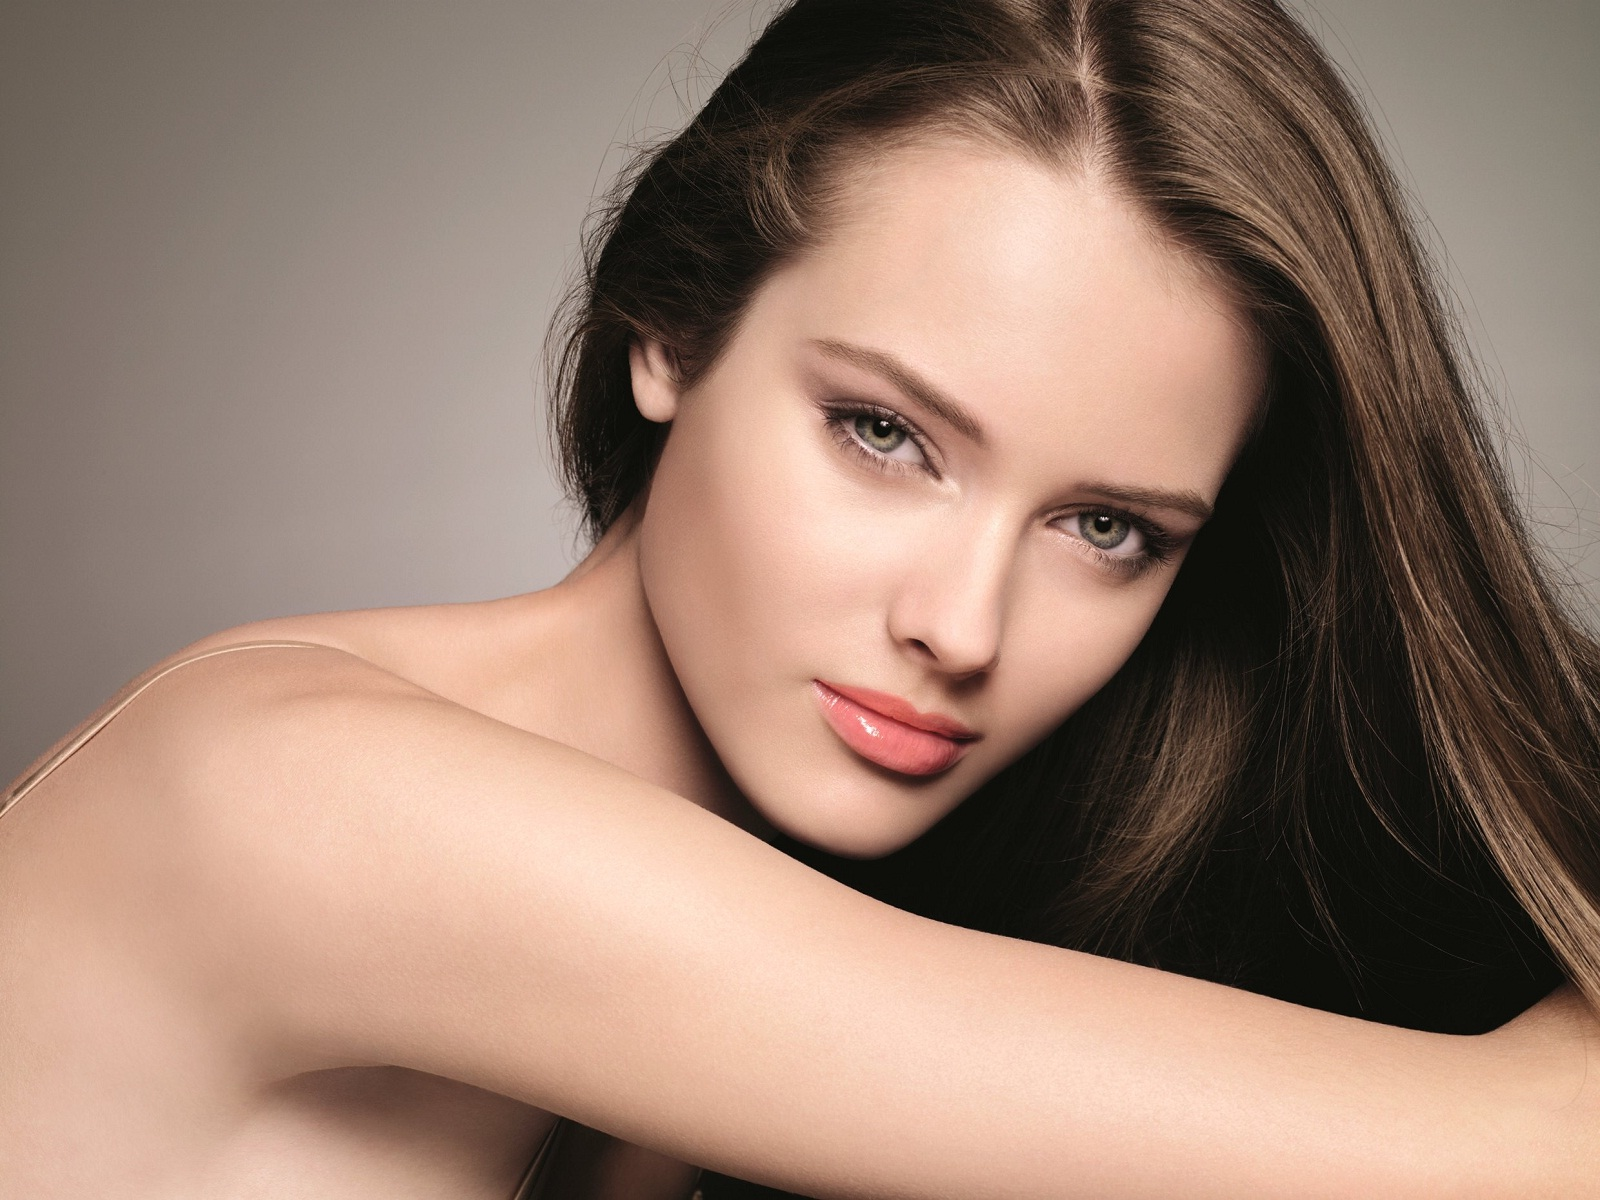 Most beautiful young lady new photos | HD Wallpapers Rocks